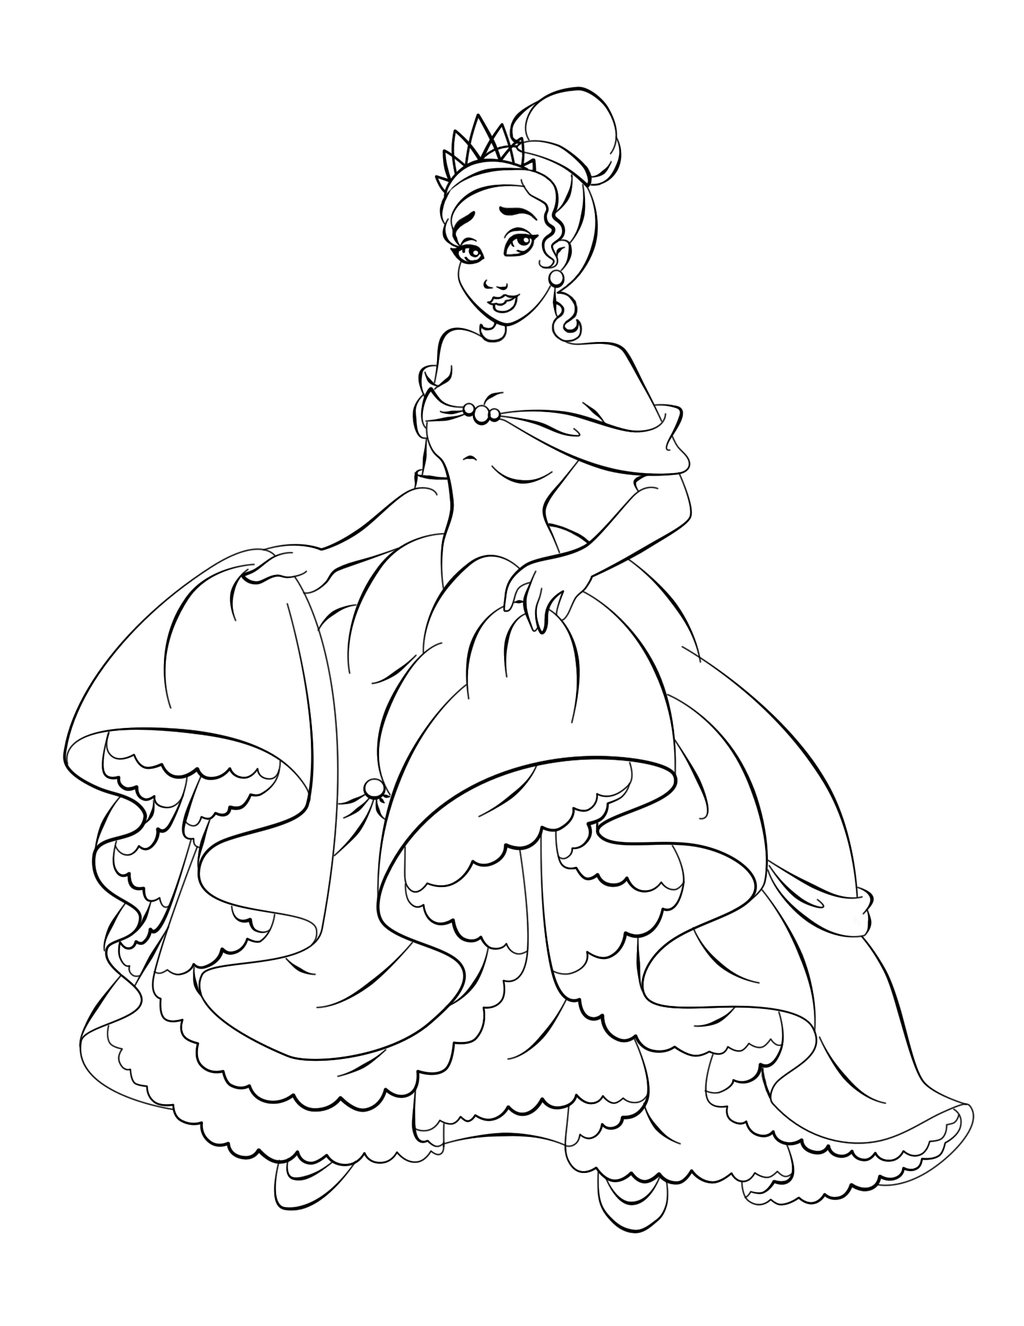 Princess Coloring Pages, Sheets and Pictures Free  - princess coloring pages printable free